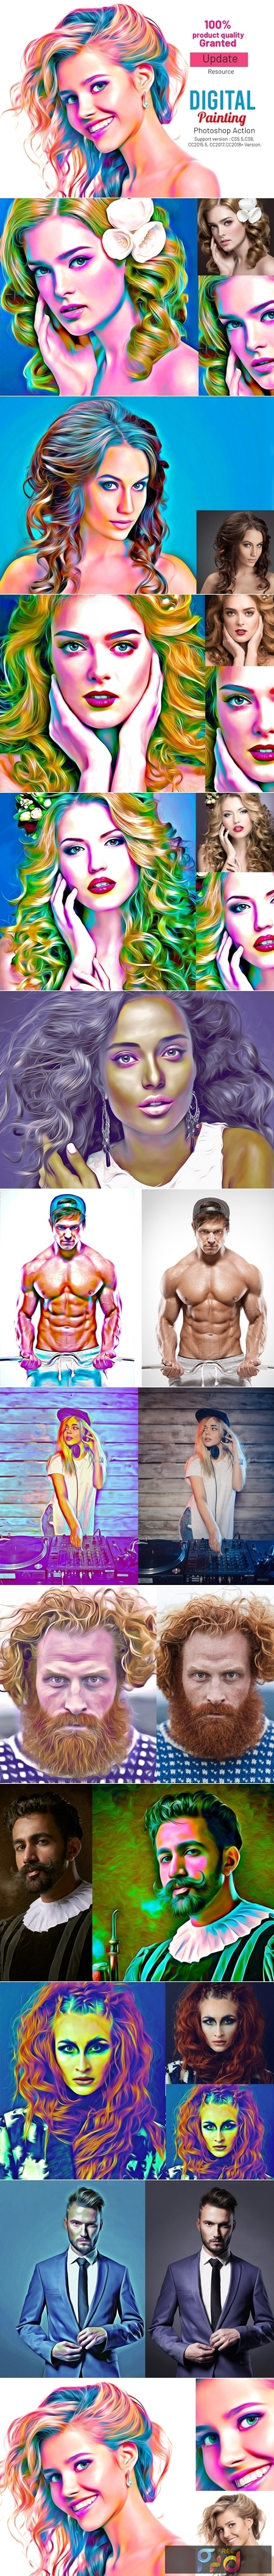 Digital Painting Photoshop Action 3969610 1